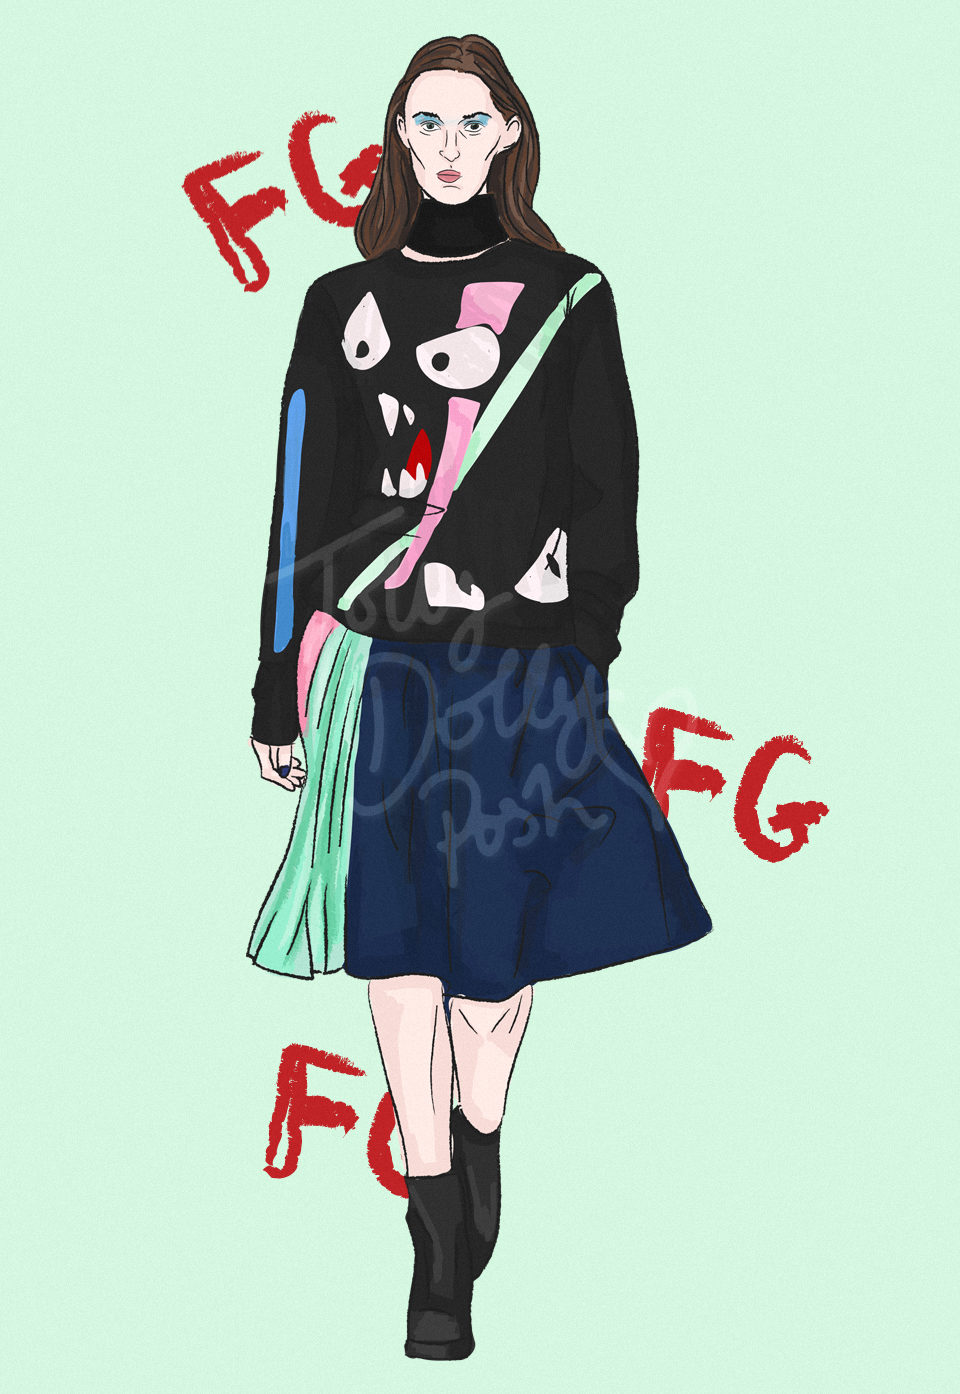 lfw autumn winter 2017 fashion collection illustrations - fyodor golan